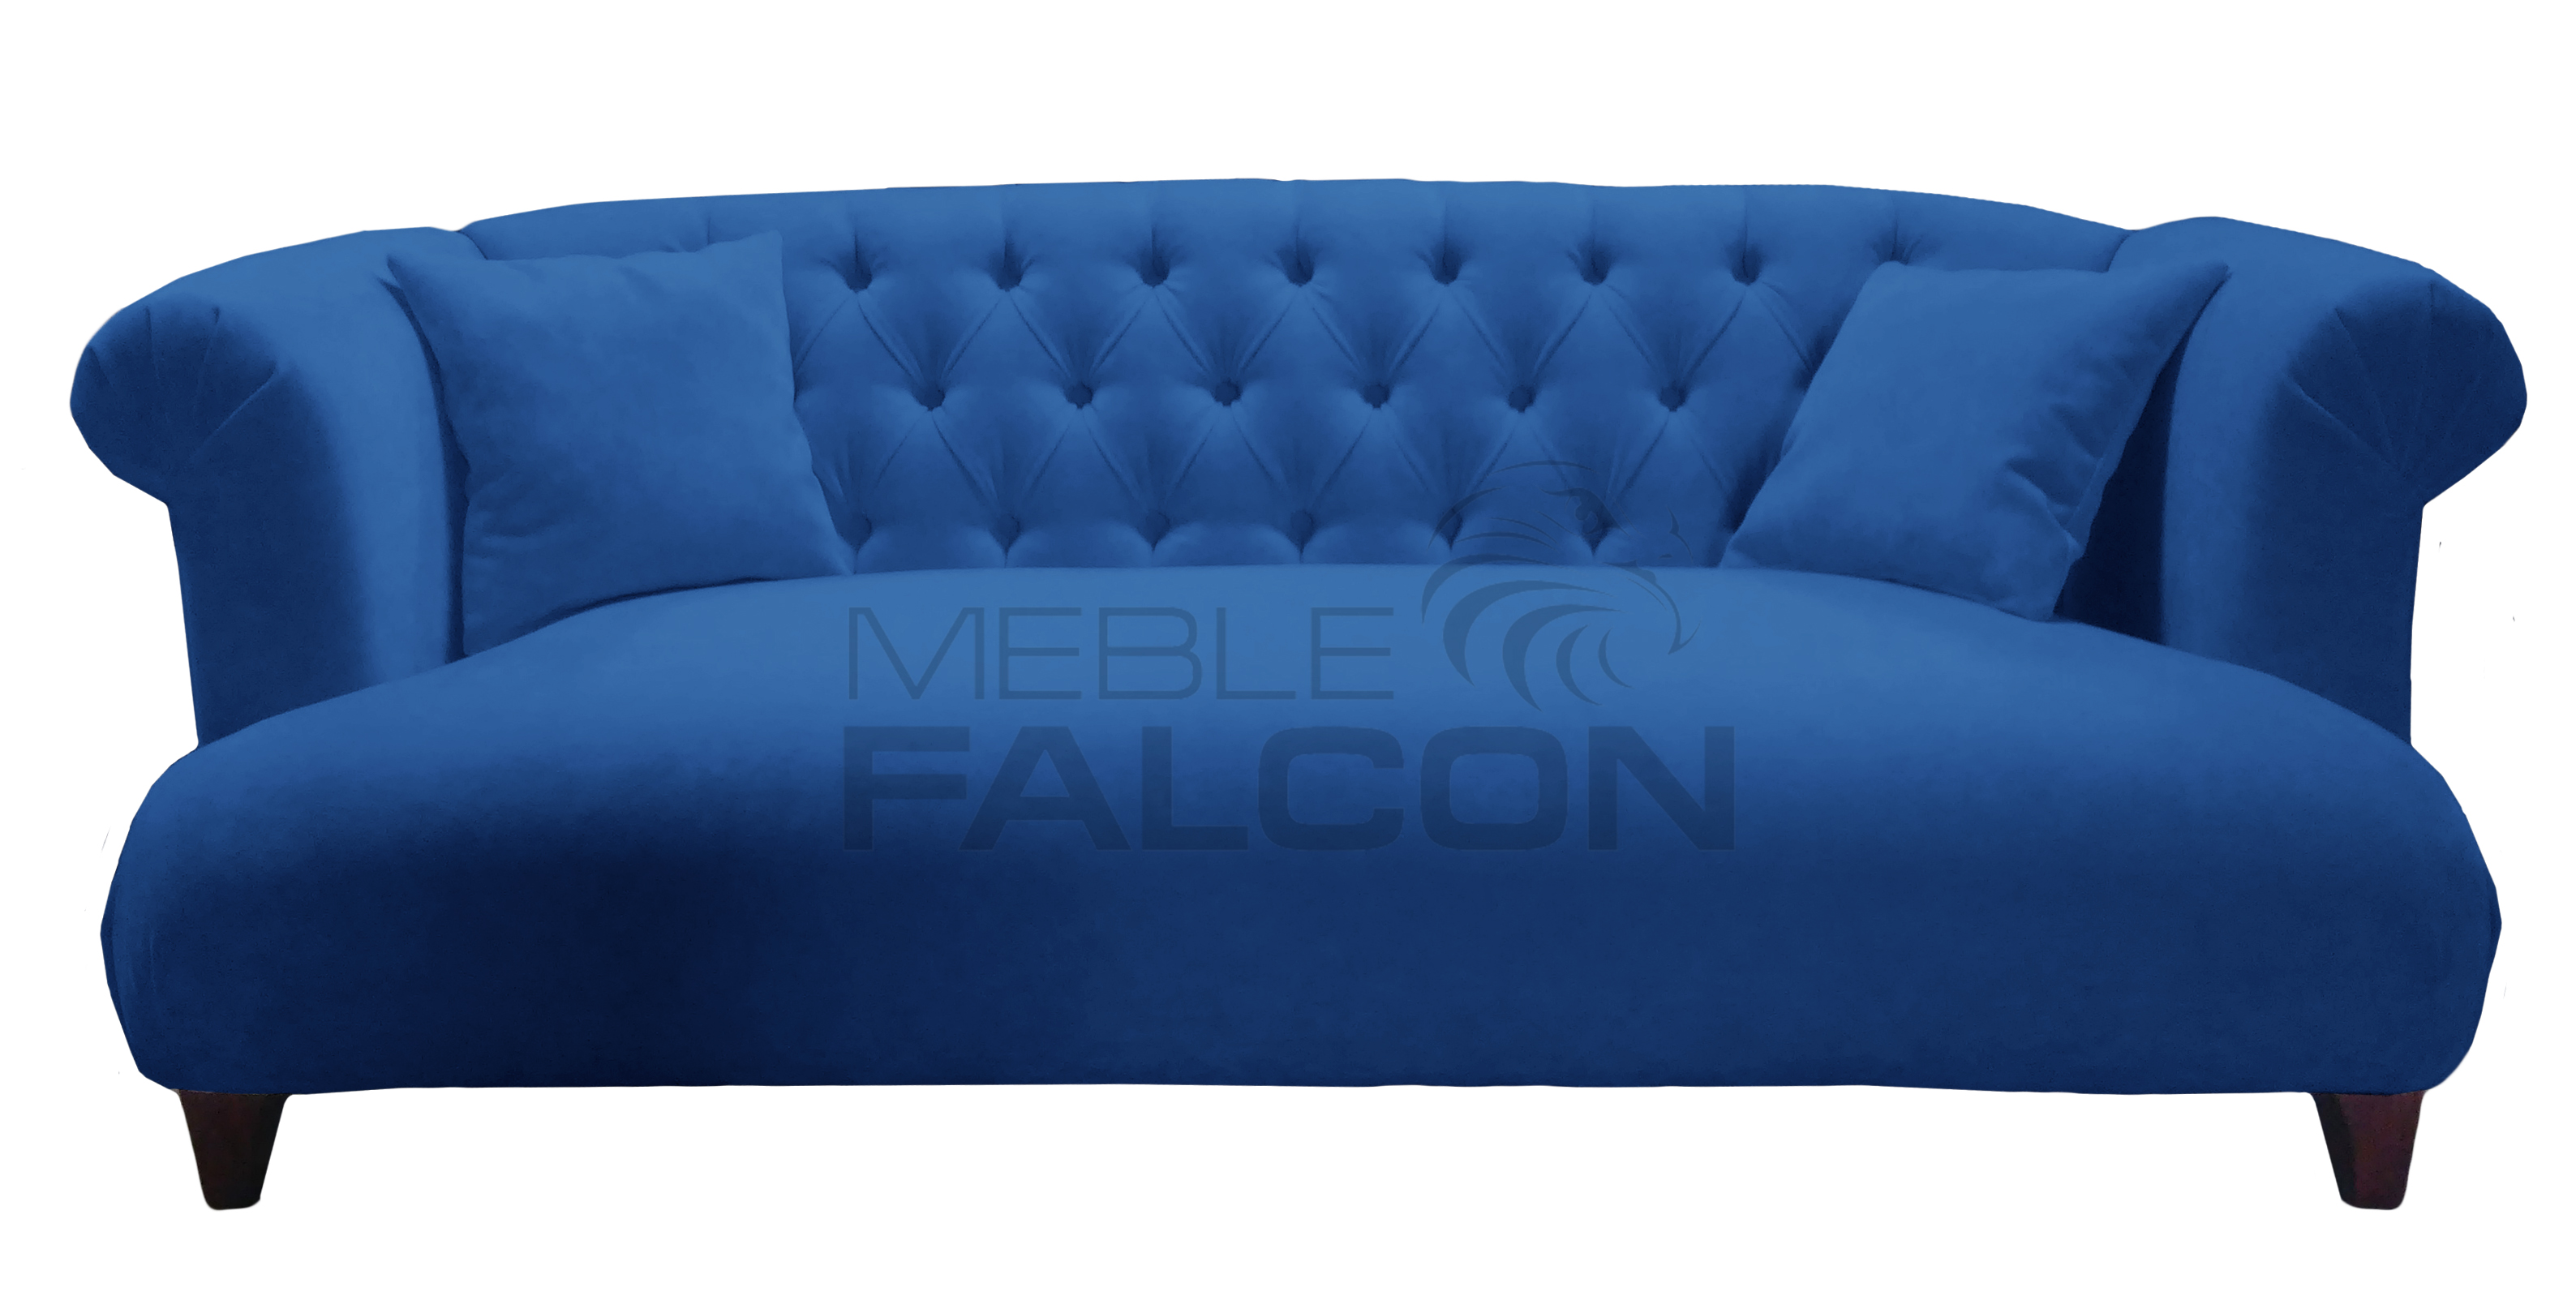 niebieska sofa chesterfield melodia producent